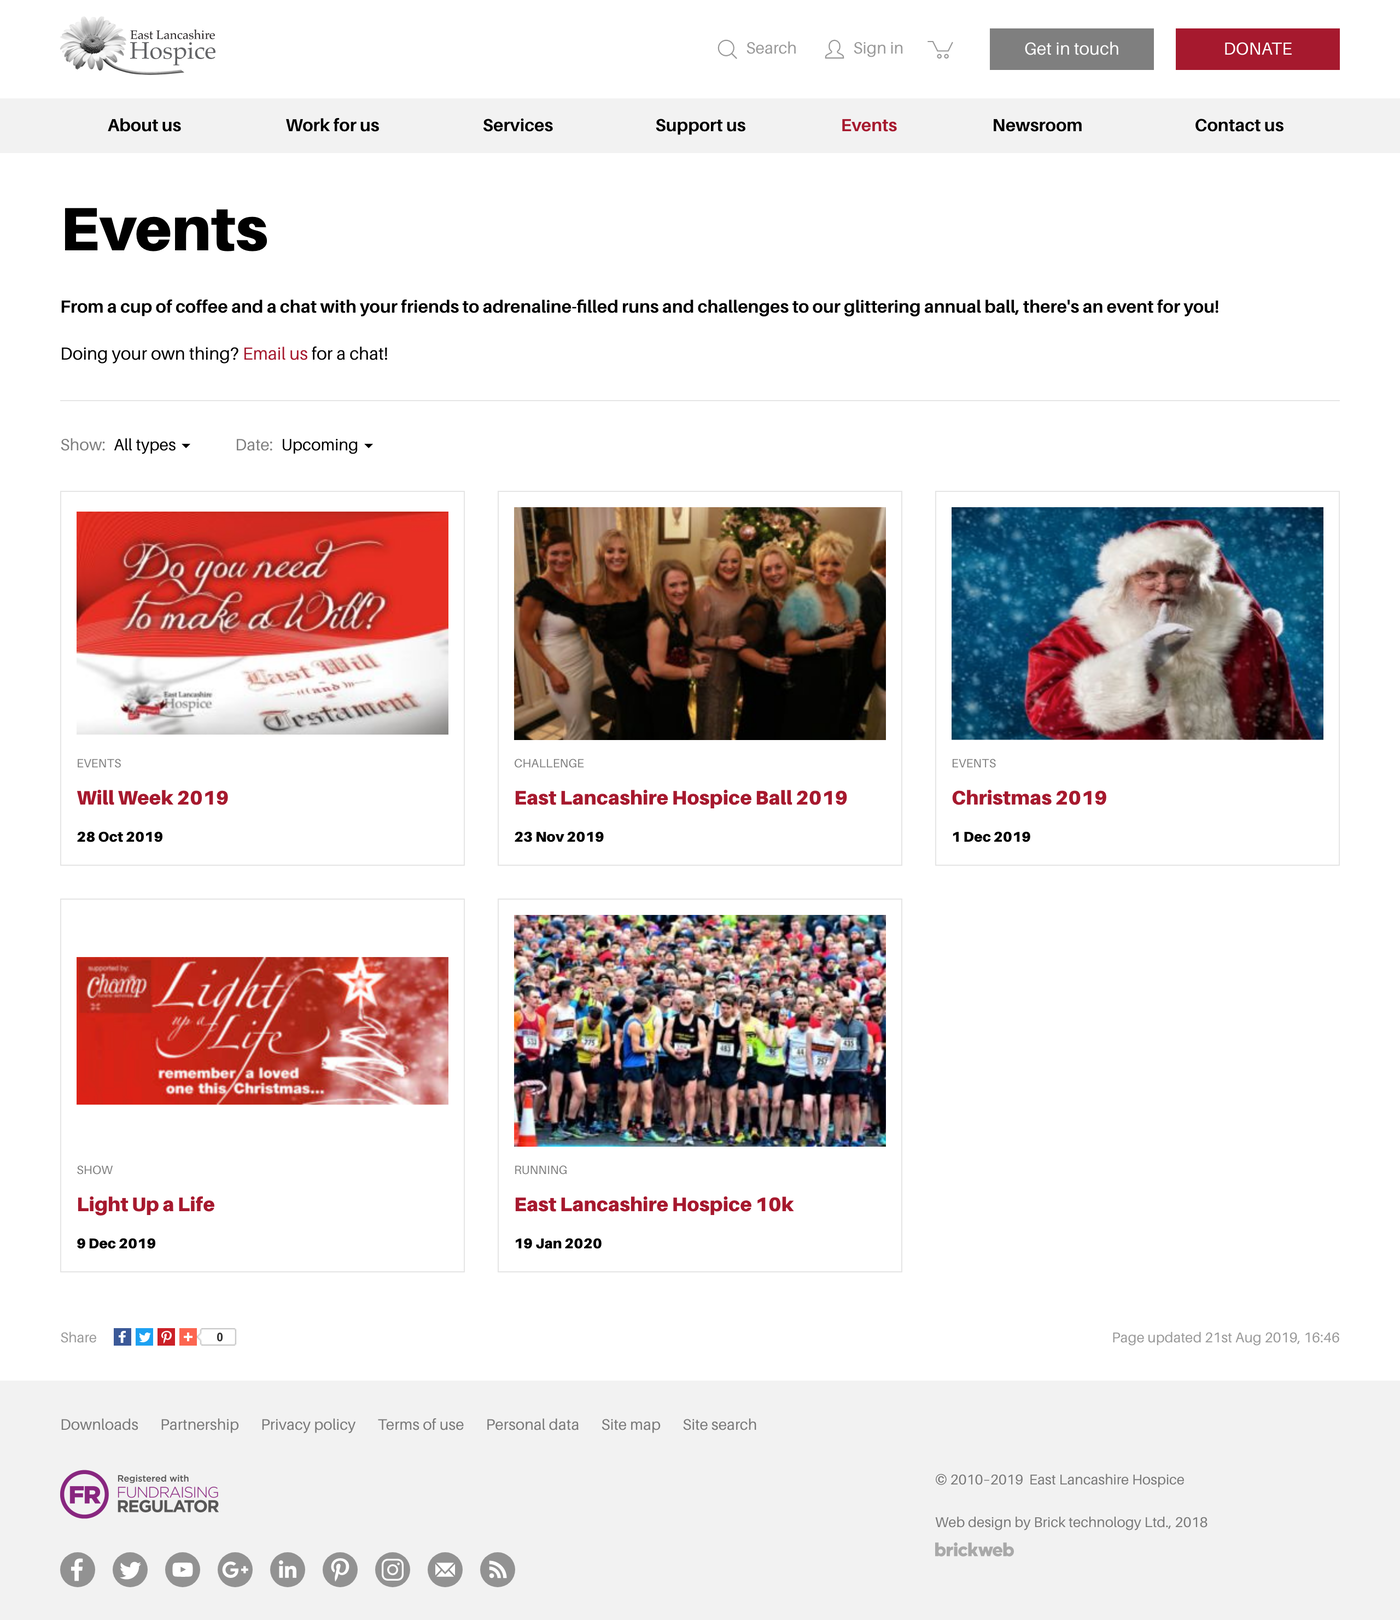 East Lancashire Hospice Events